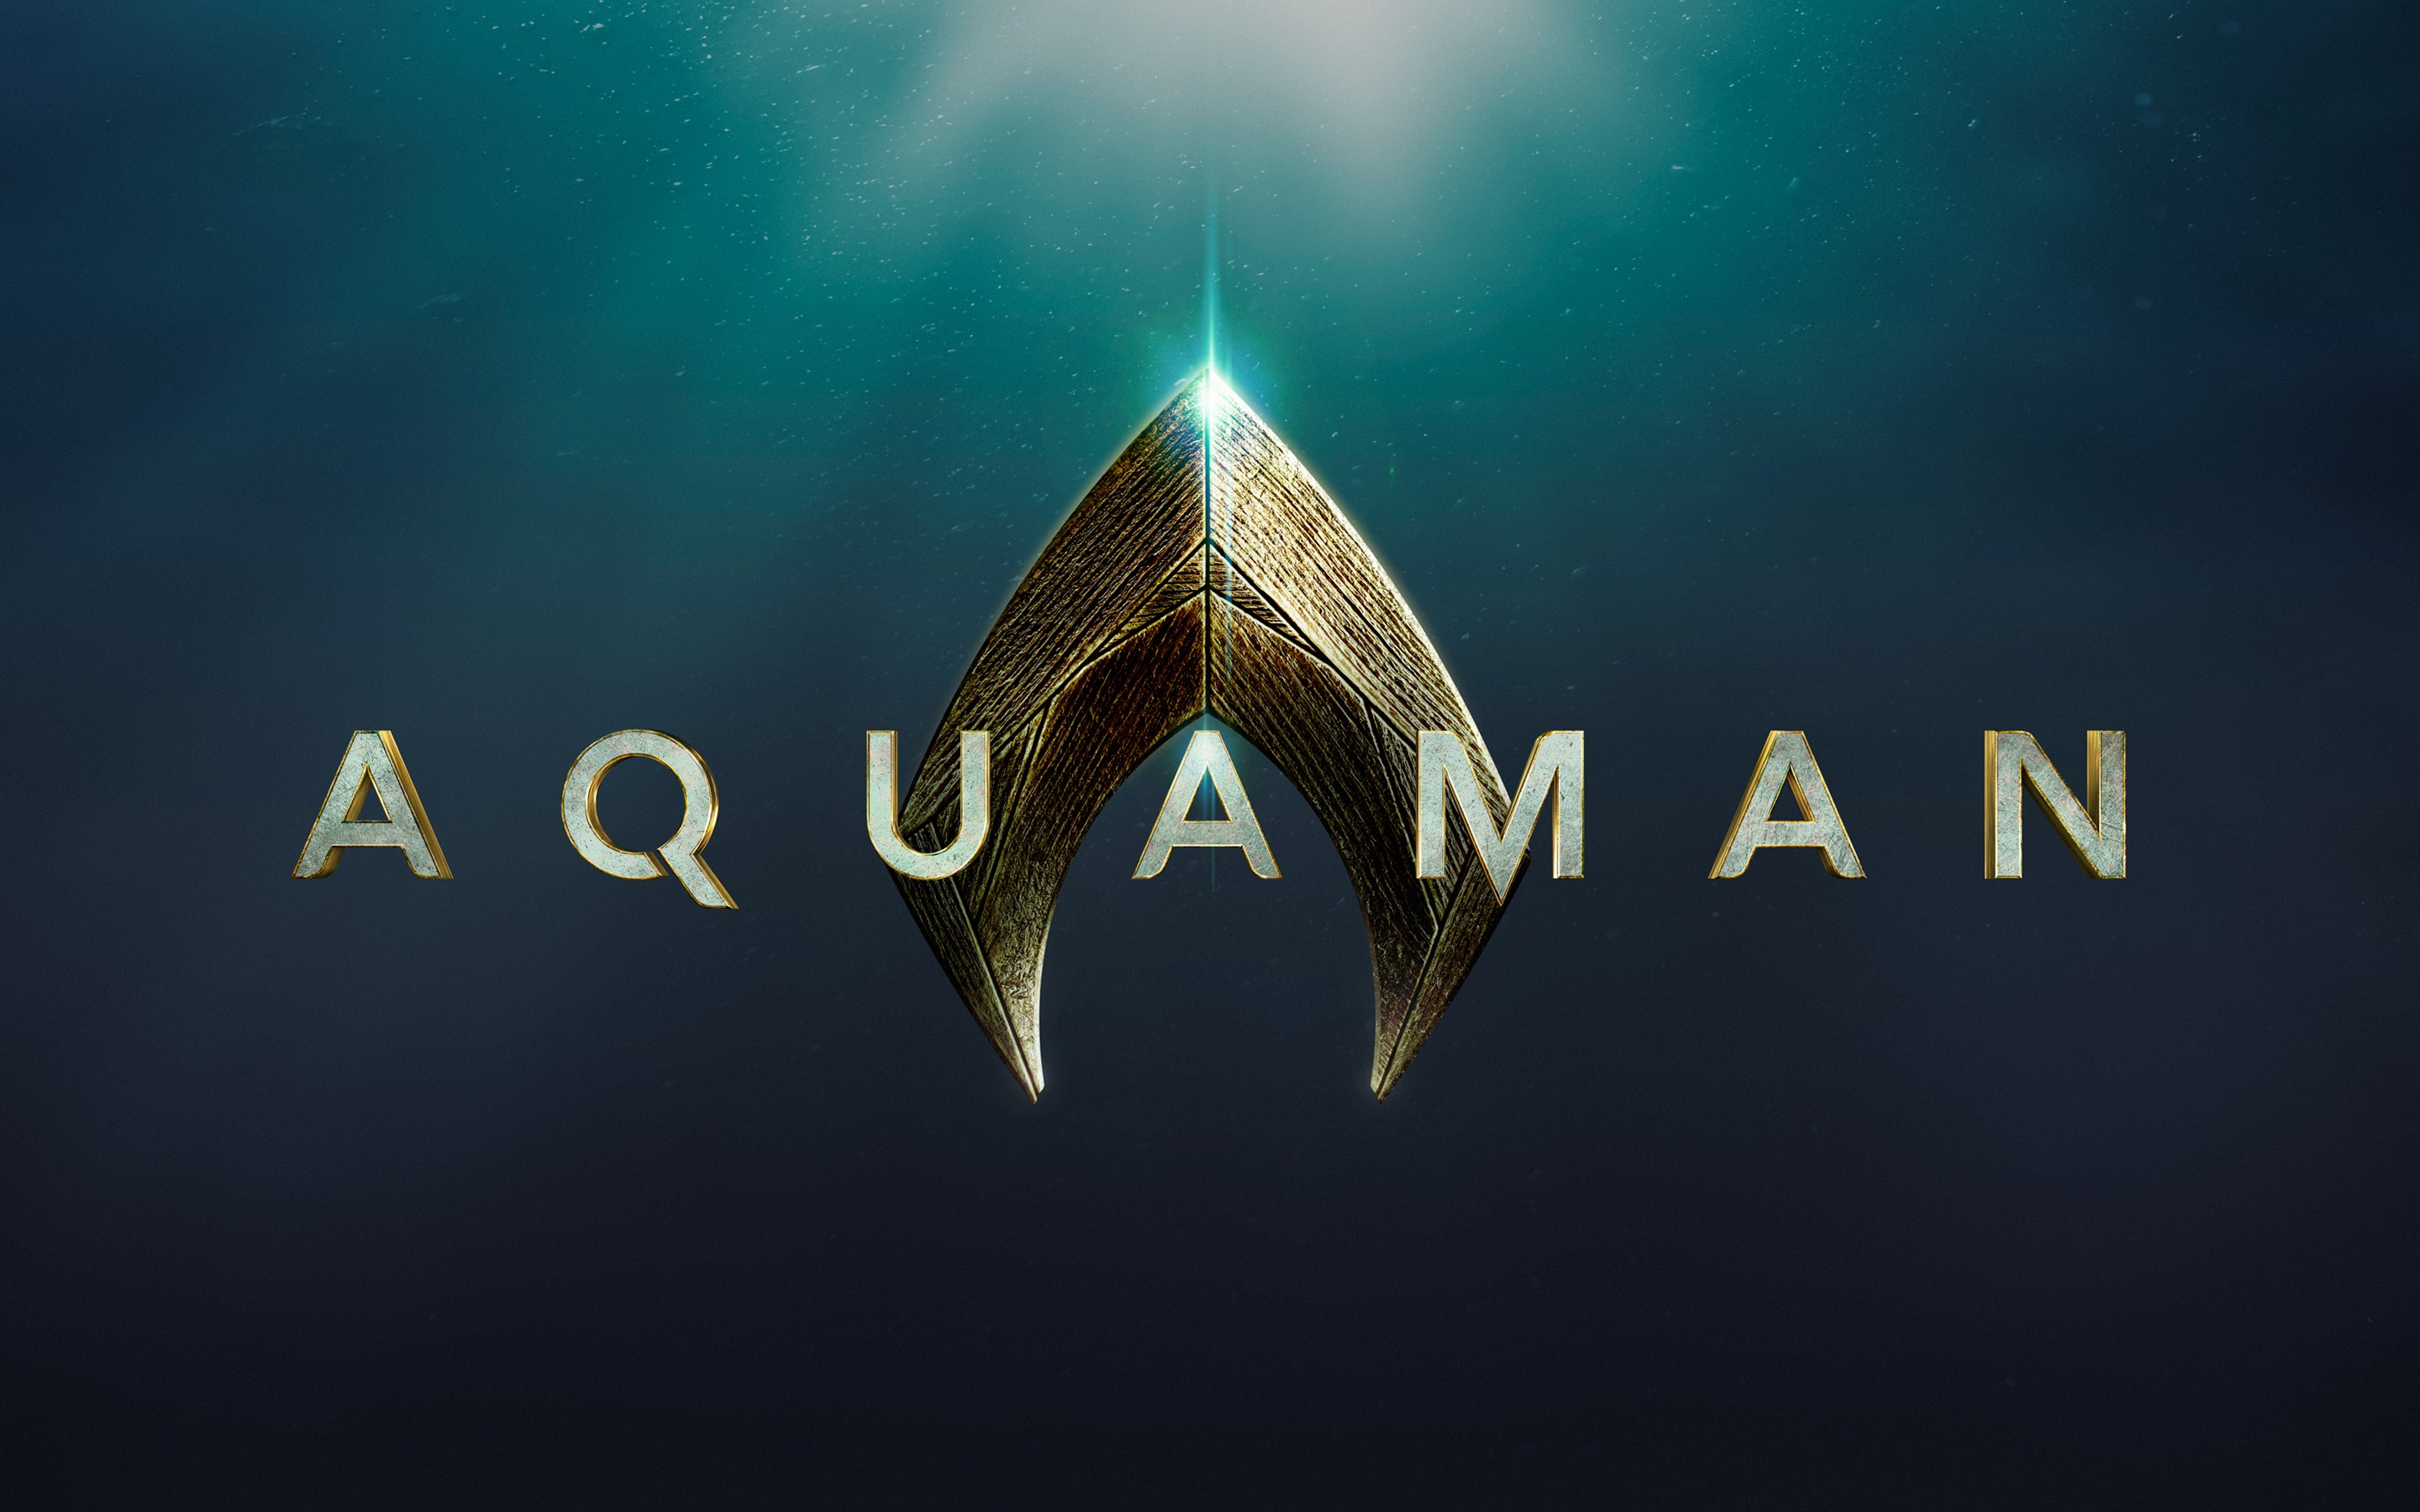 Aquaman-movie-logo_2880x1800.jpg